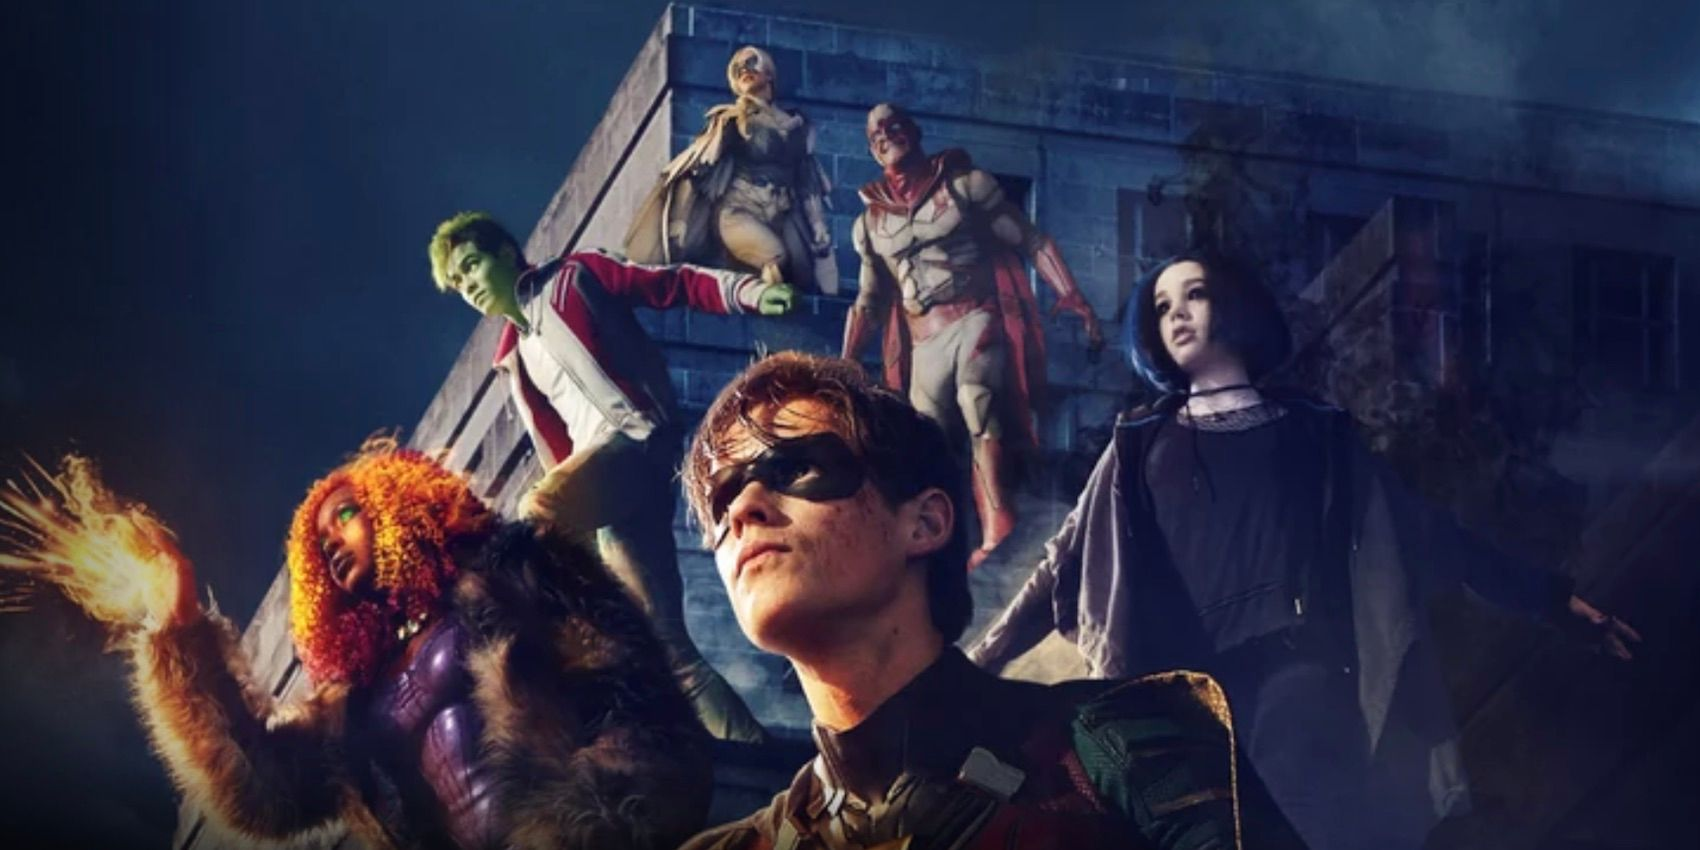 Dc 2019 Movies Poster: DC's Titans Is Now Available Internationally On Netflix